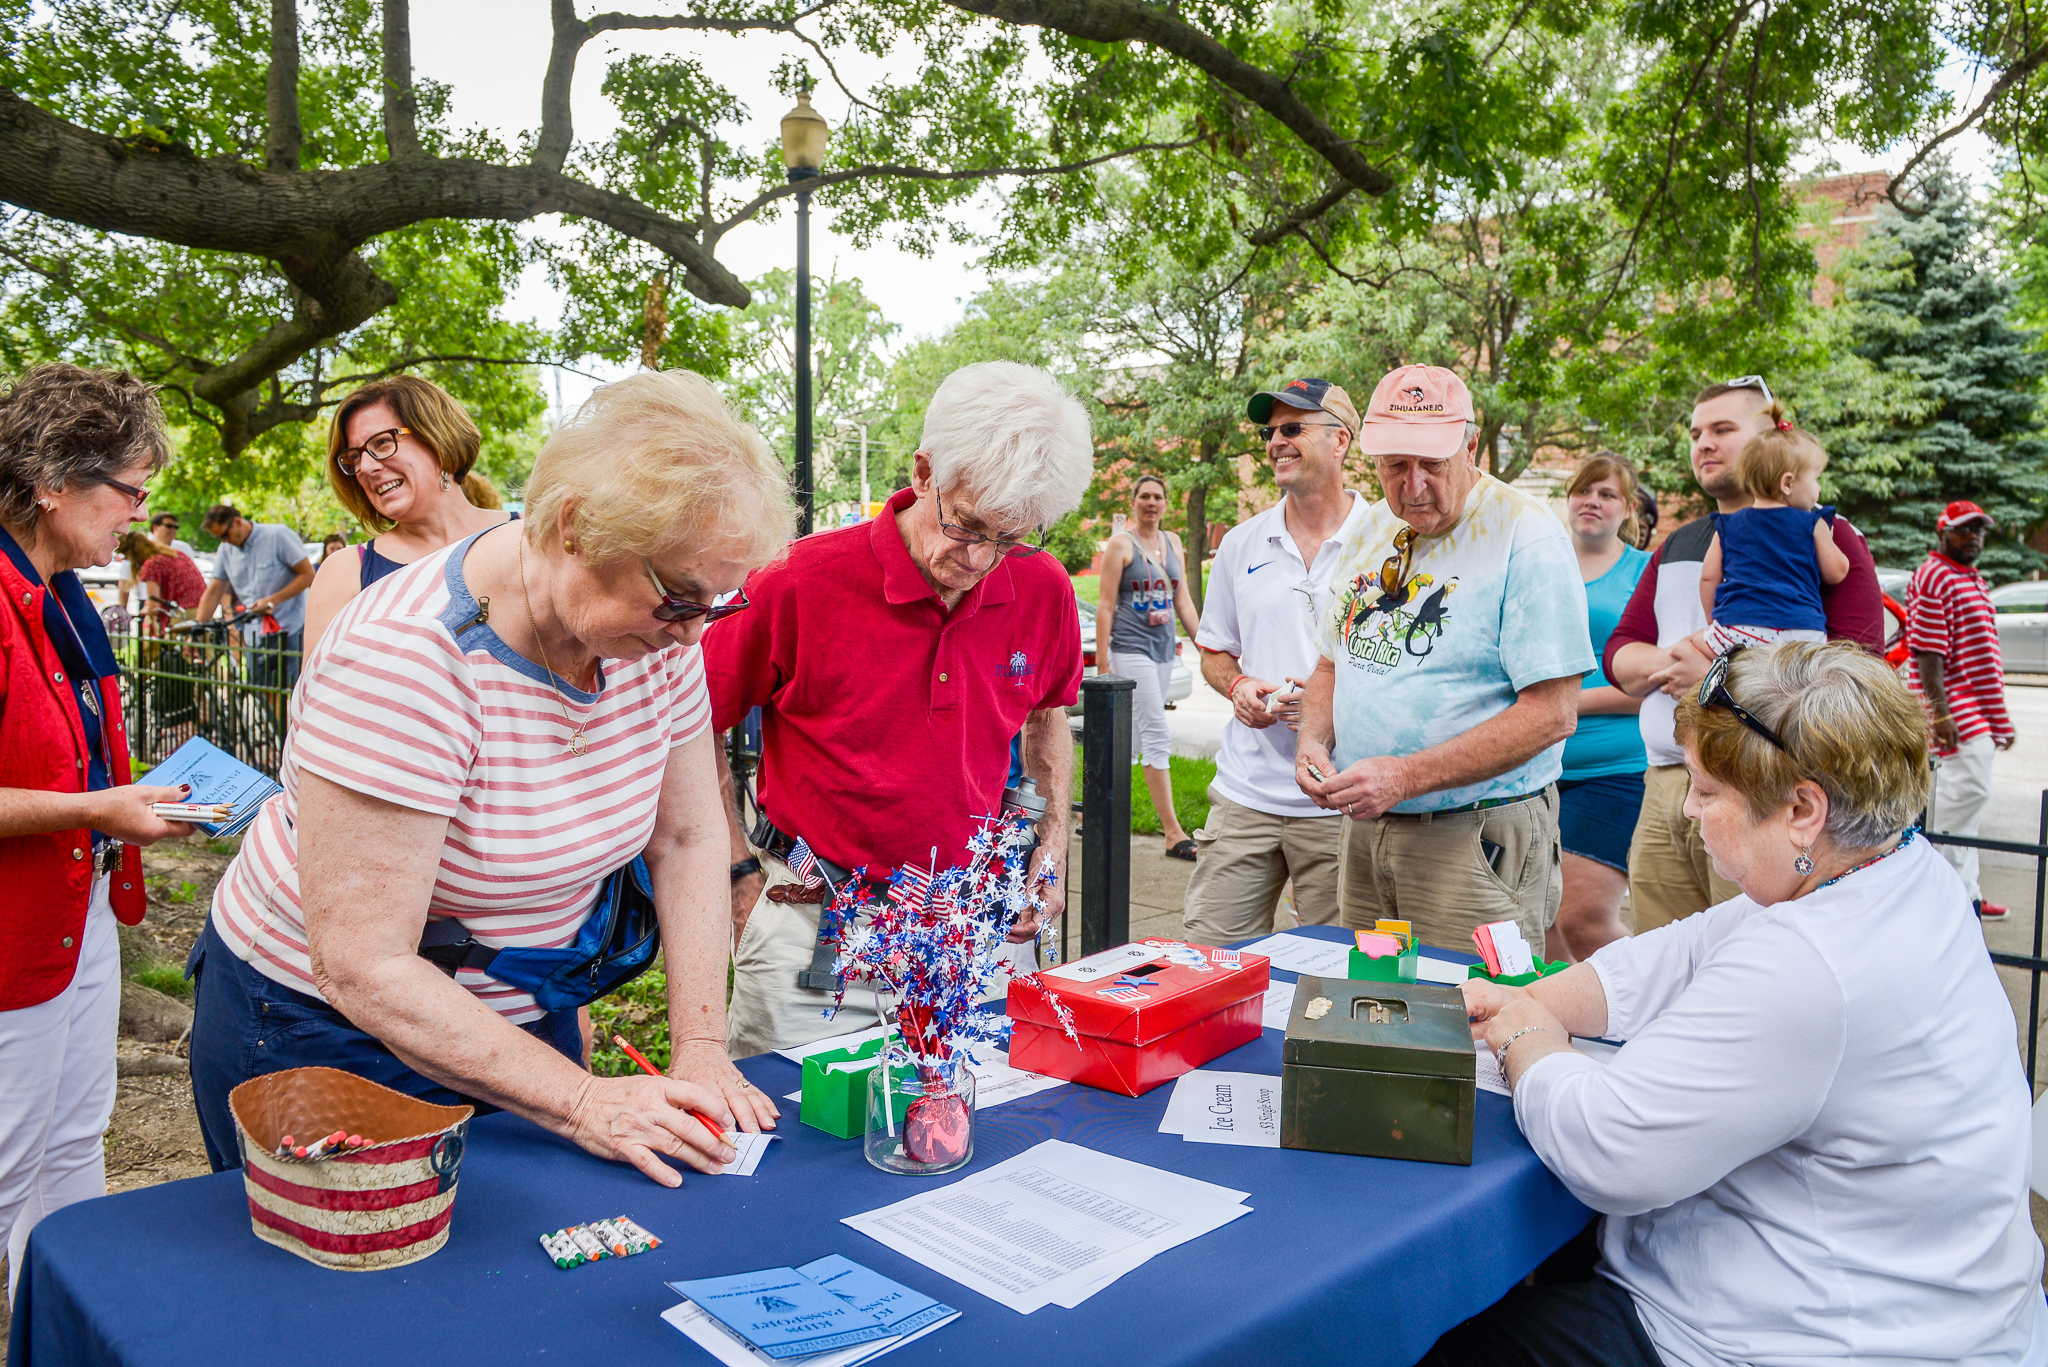 Photo of several seniors gathered at a table, perusing the items while a vendor looks on.